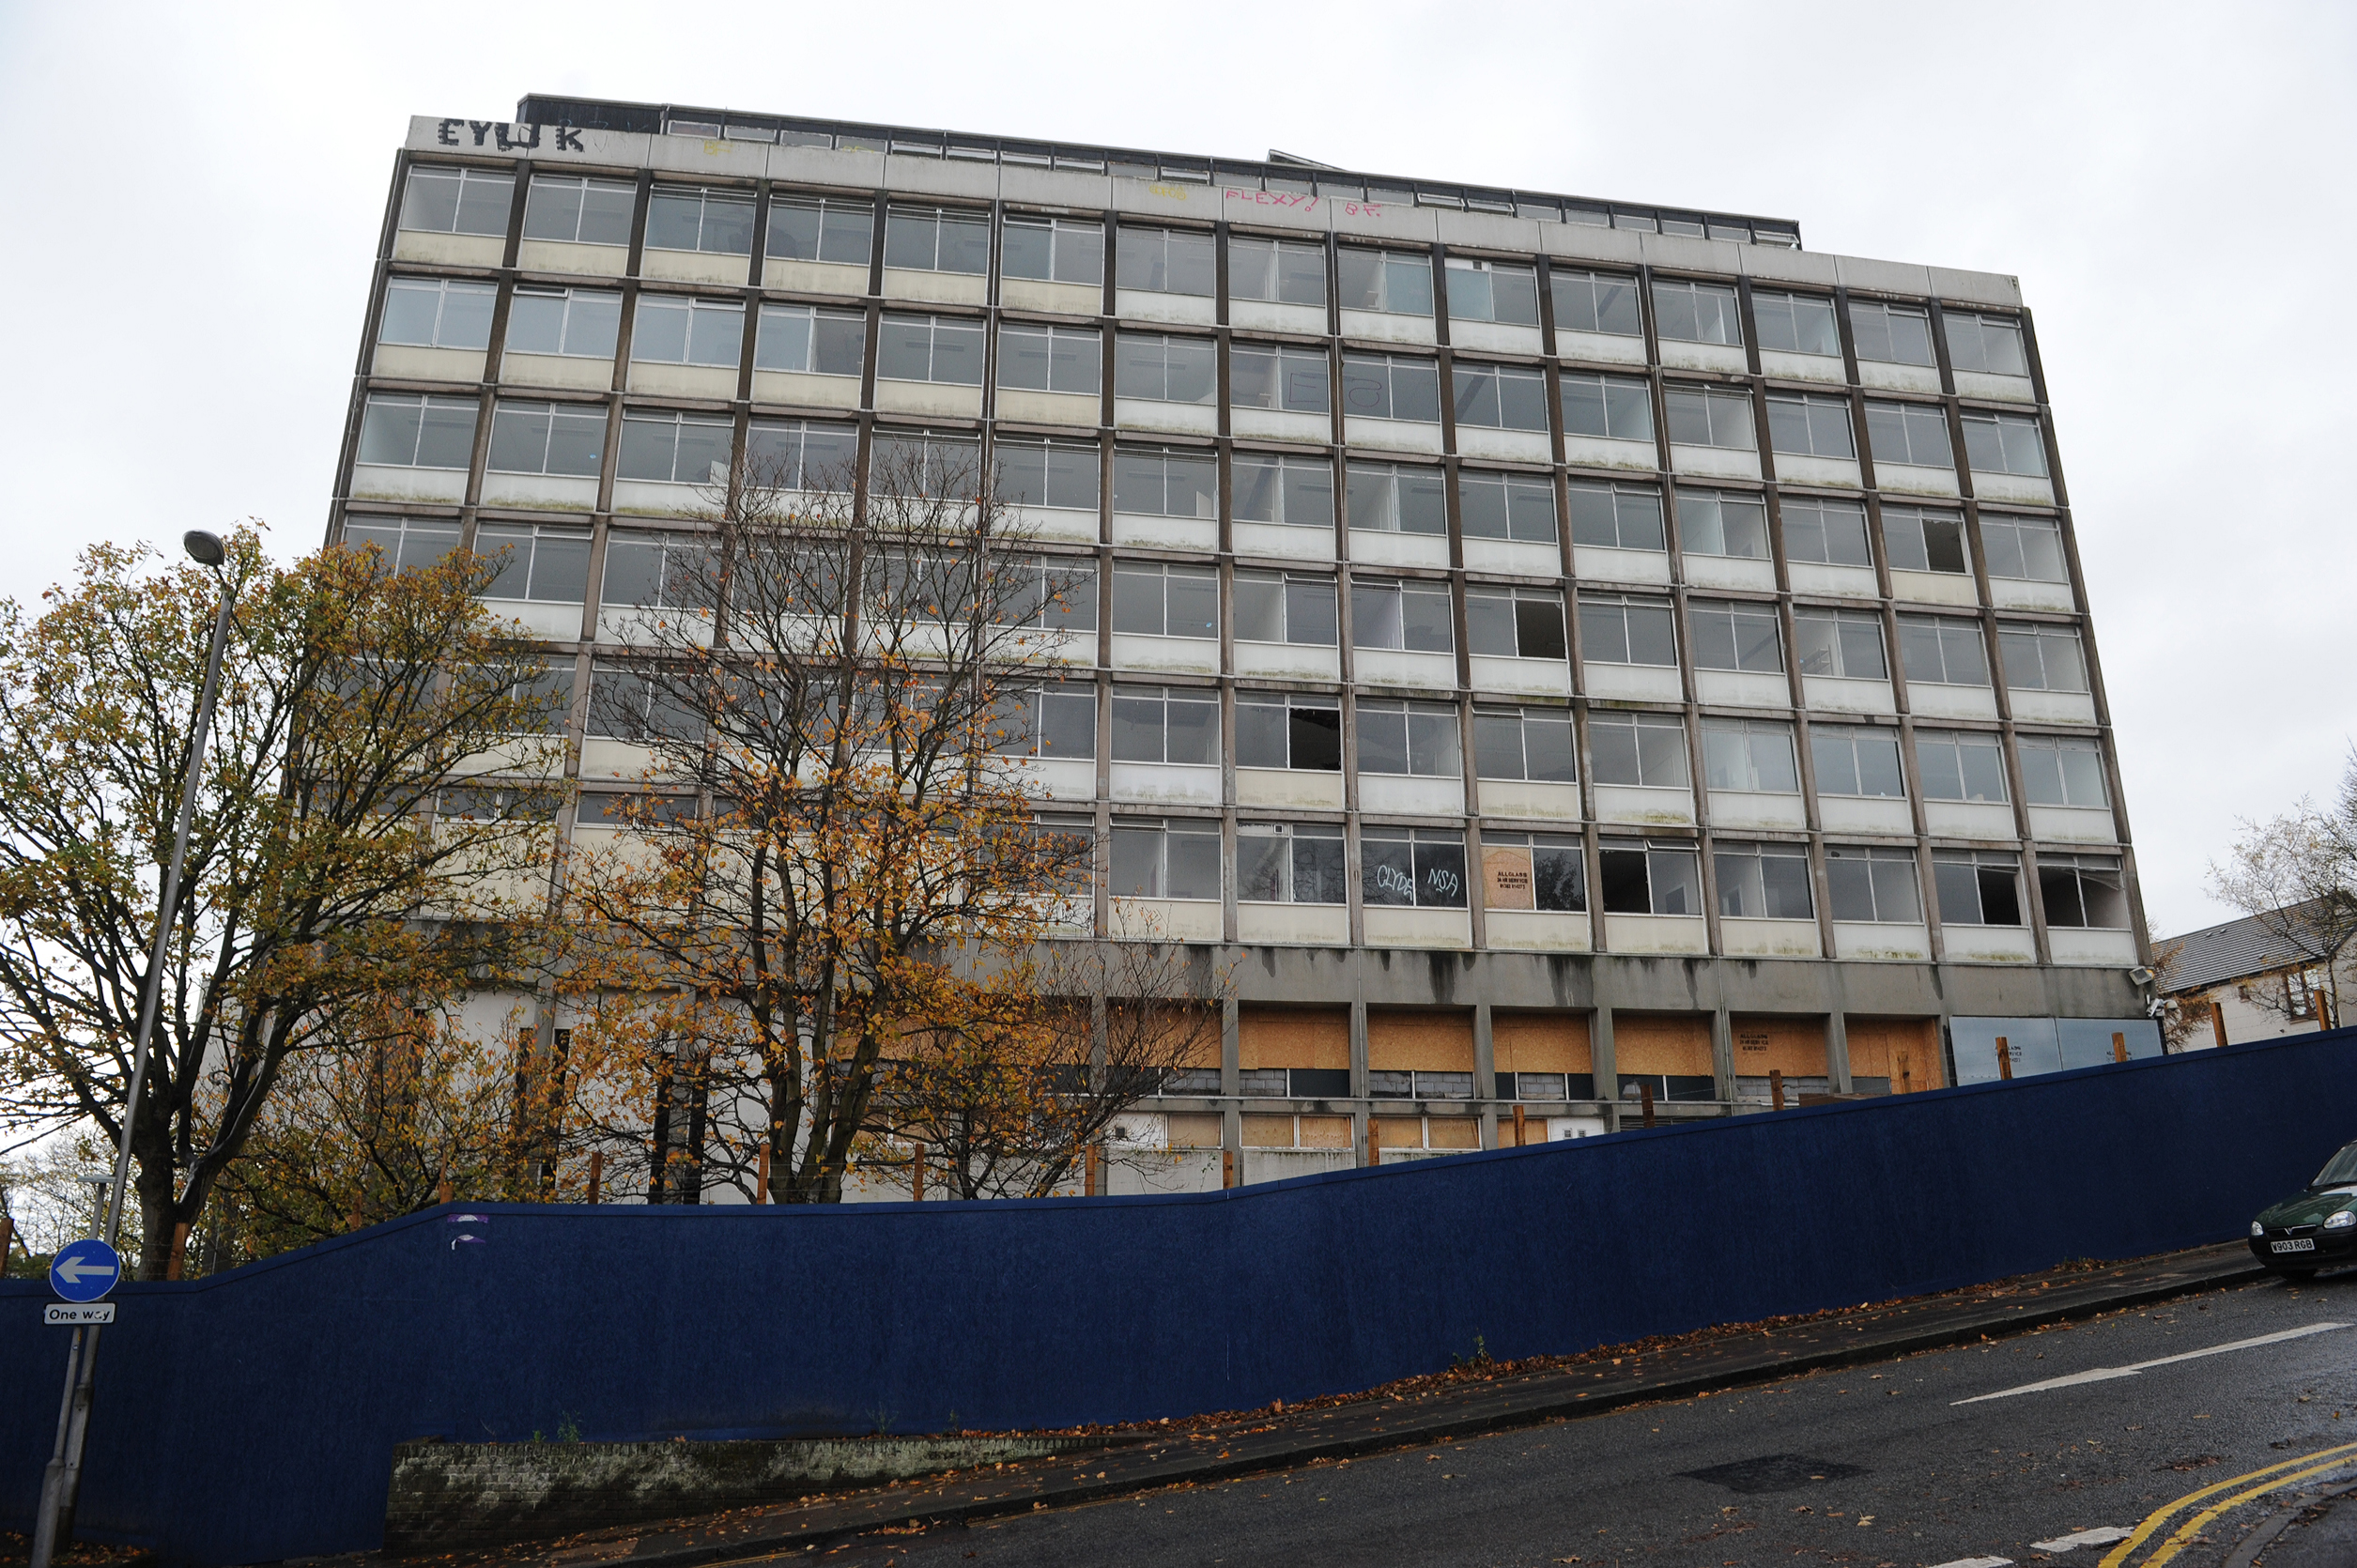 The old Dundee College building on Constitution Road, Dundee.